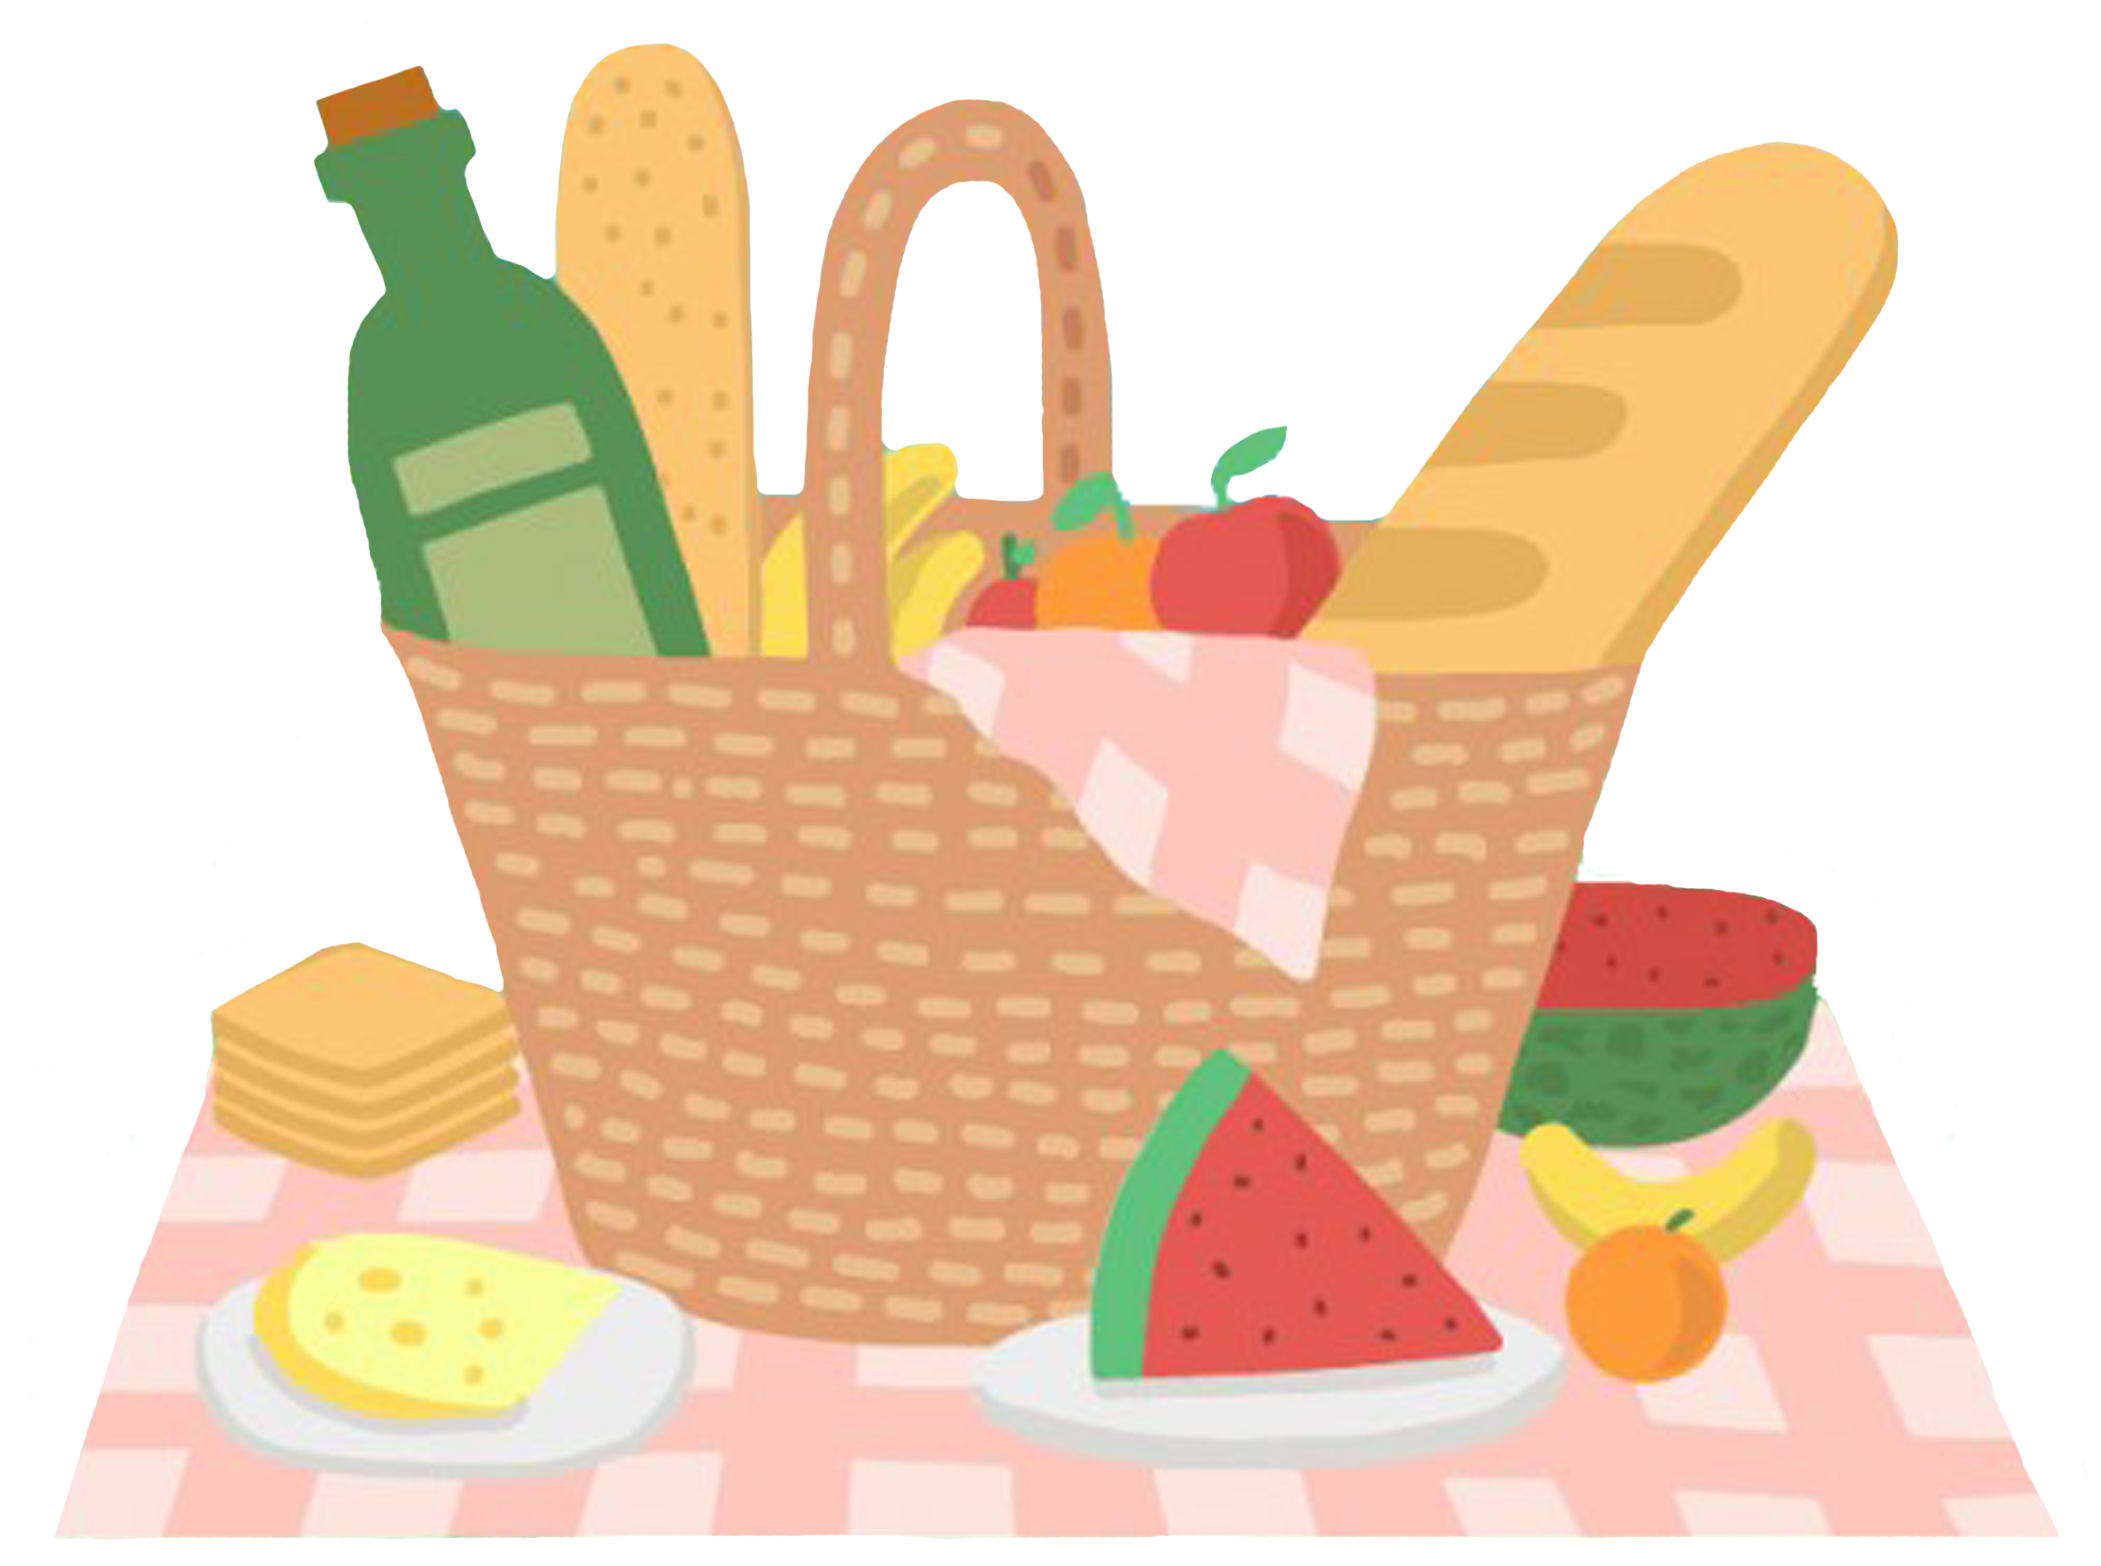 Picnic Basket Clipart family picnic food in 2019.